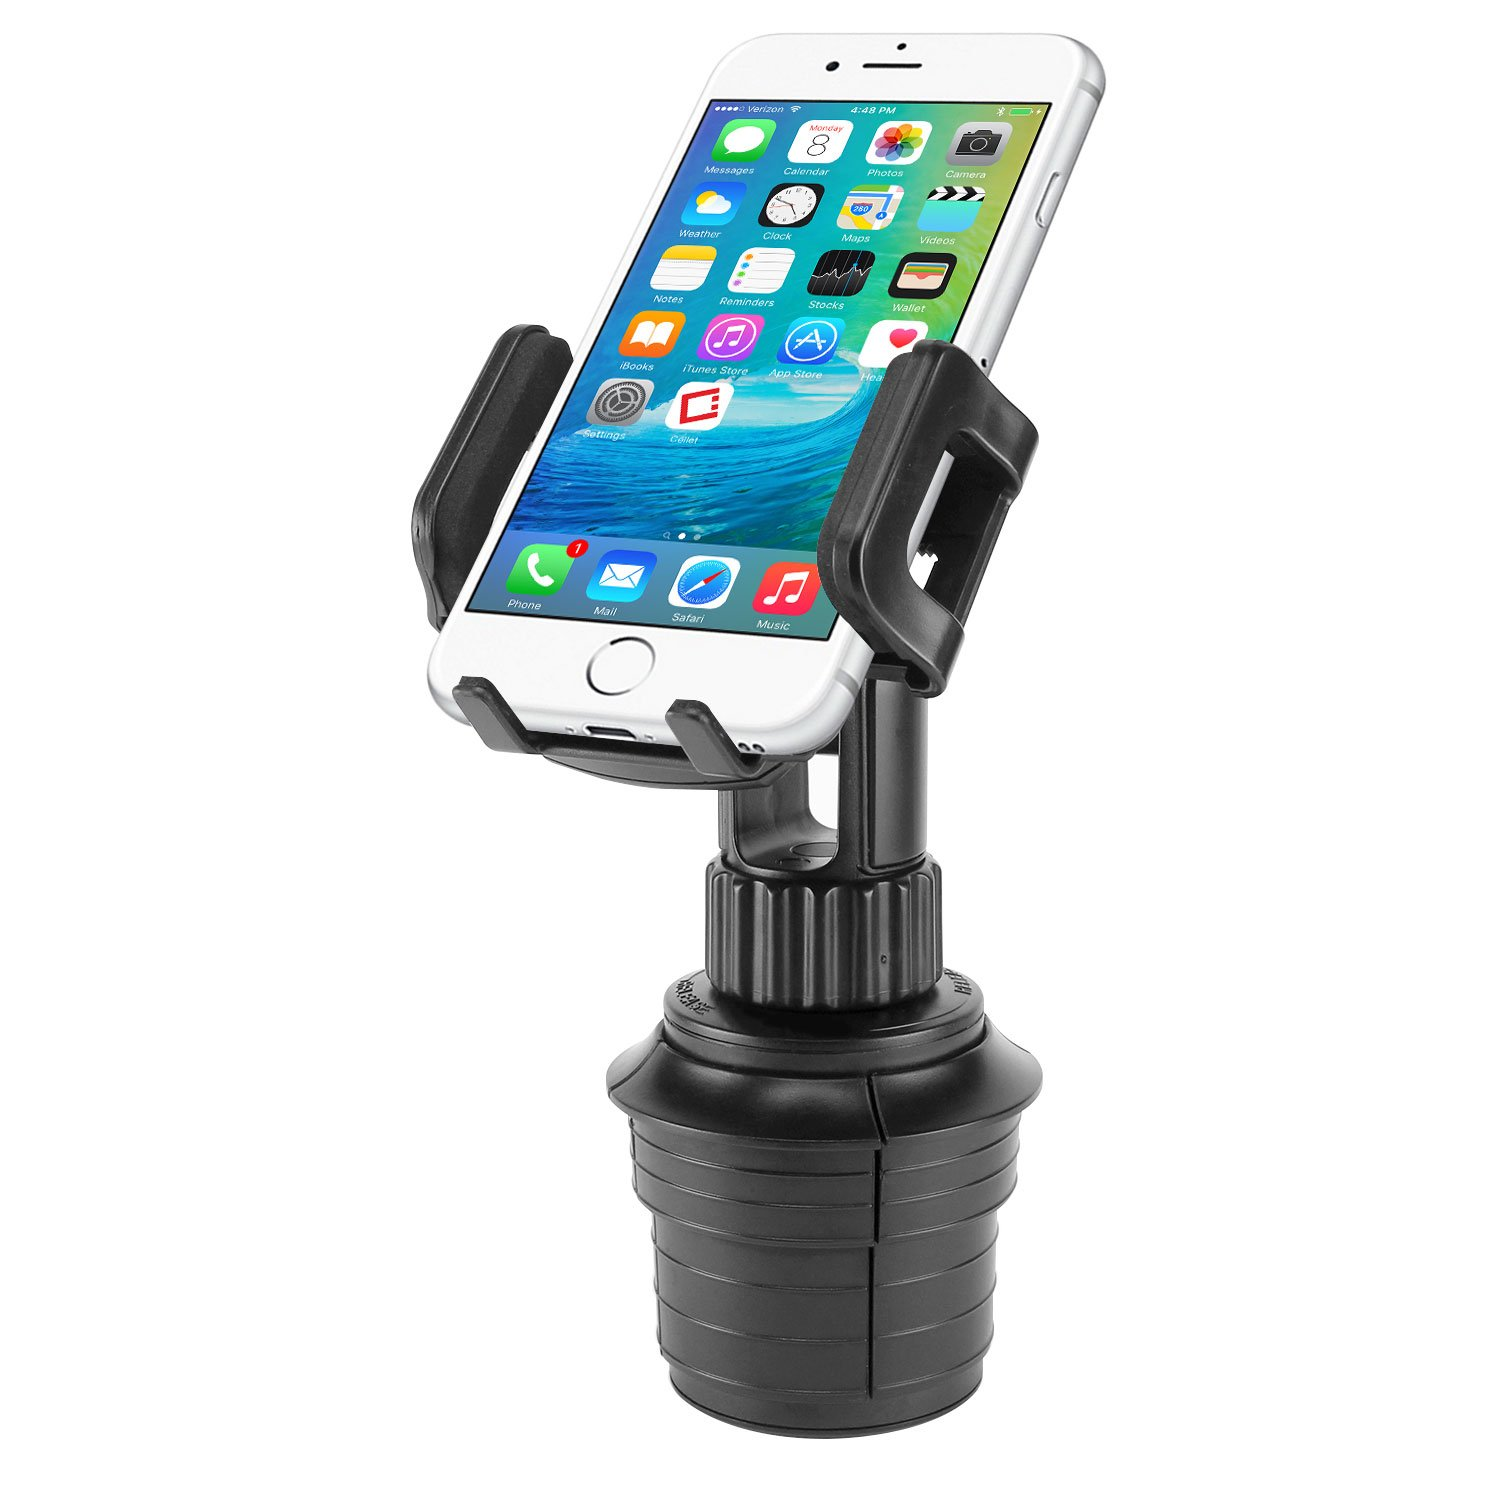 Cellet PH600 Car Cup Holder Mount, Adjustable Smart Phone Cradle for iPhone XR XS Max X 8 Plus 7 Plus Samsung Note 10 9 8 Galaxy S10+ S9 Plus S8 + S7 LG V50 Q7+ Stylo 4 V35 ThinQ G6 G7 Aristo 2 Plus by Cellet